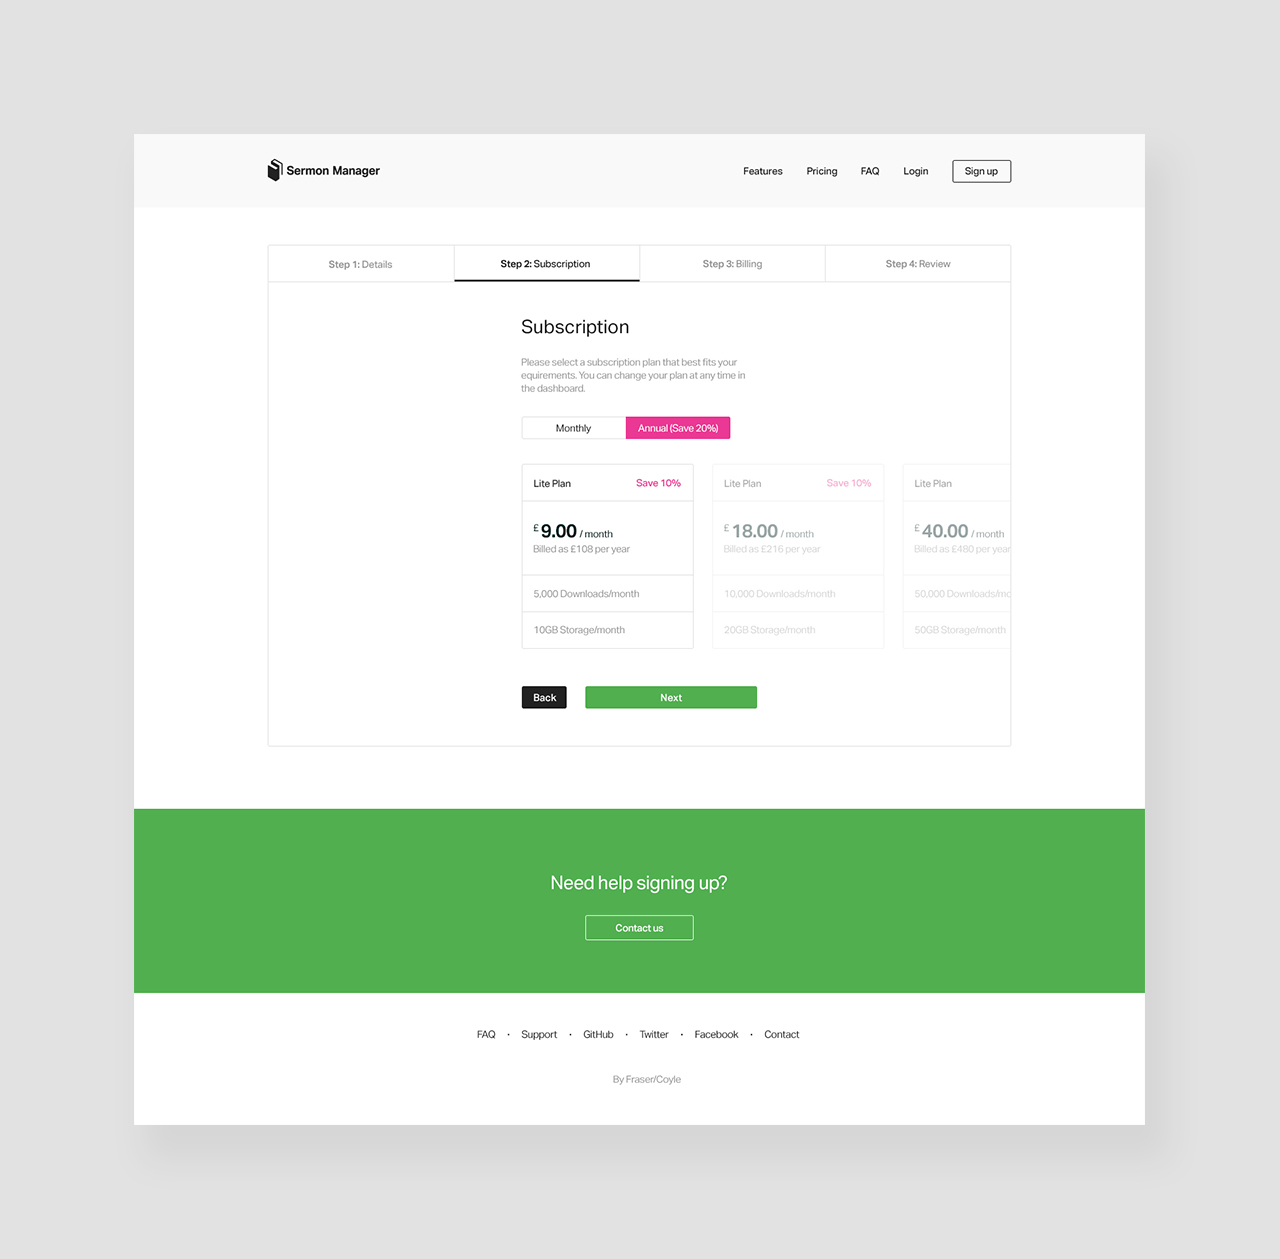 sermonmanager-mockup-website-signup-2